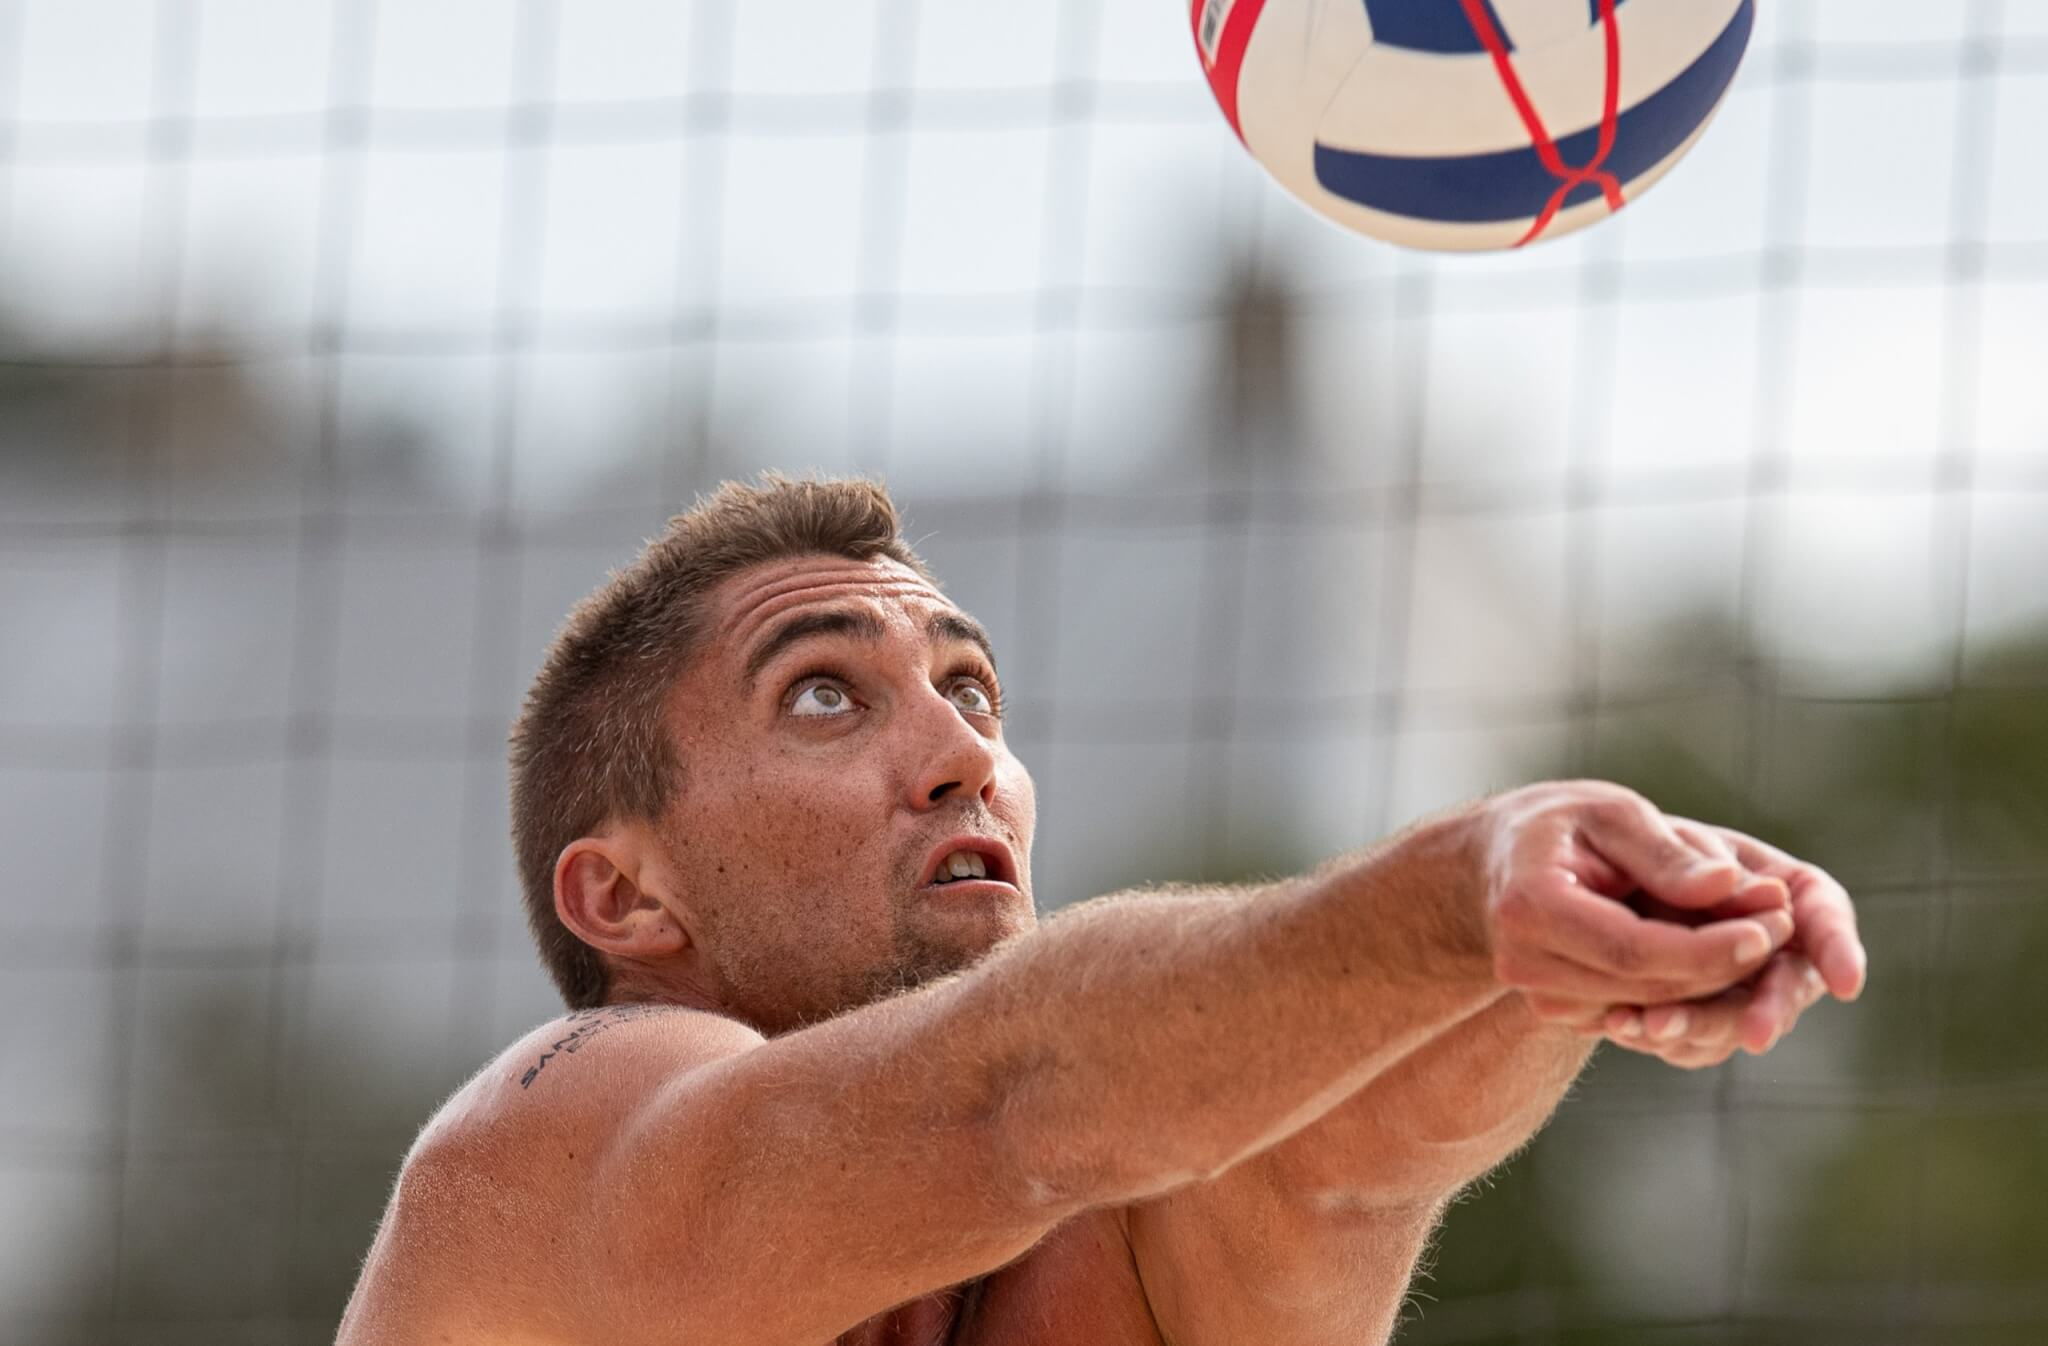 Trevor Crabb playing at the 2021 Florida Pro Best of the Beach professional beach volleyball event